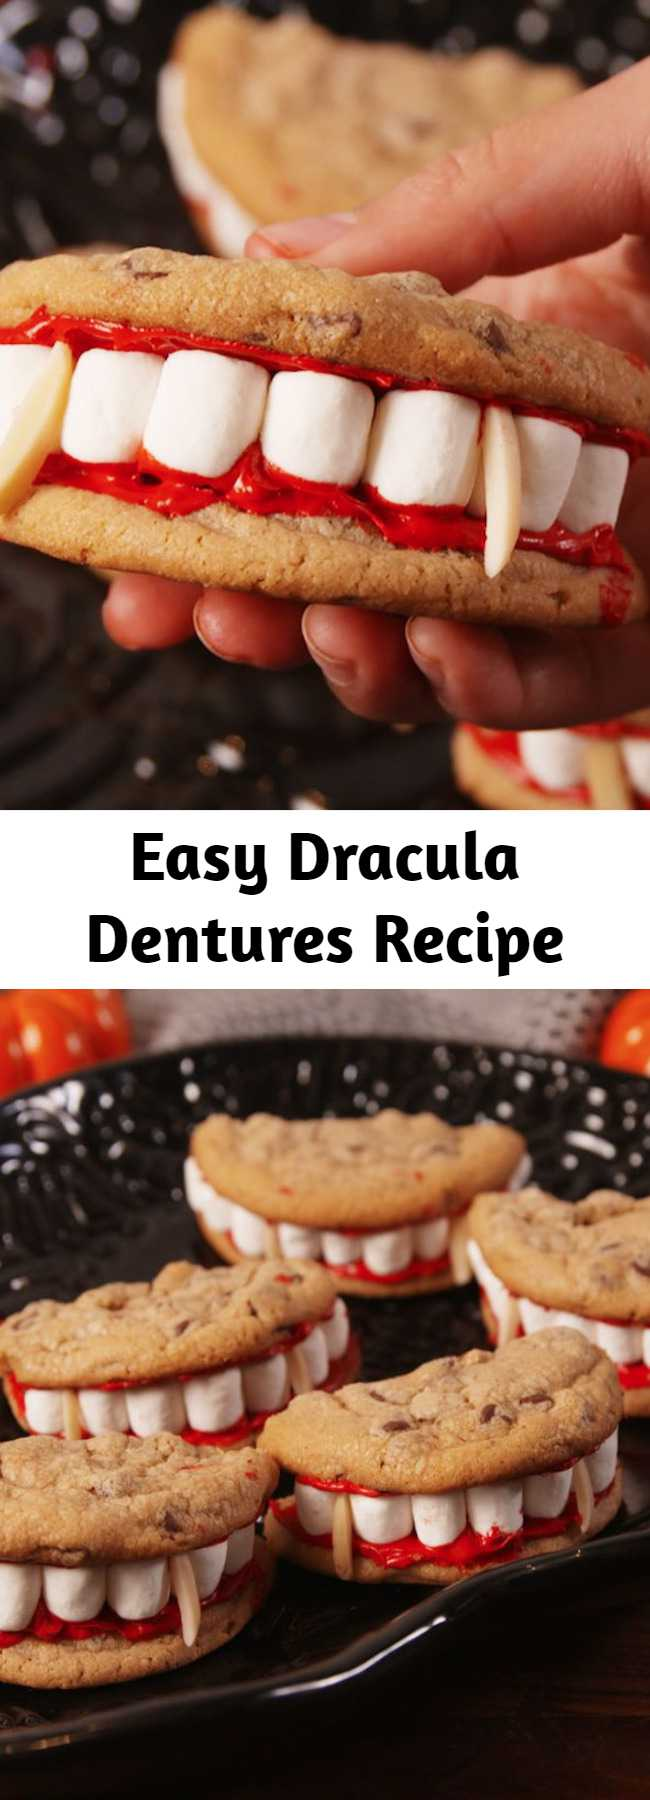 Easy Dracula Dentures Recipe - The only tasty dentures. Look at those marshmallowy whites.